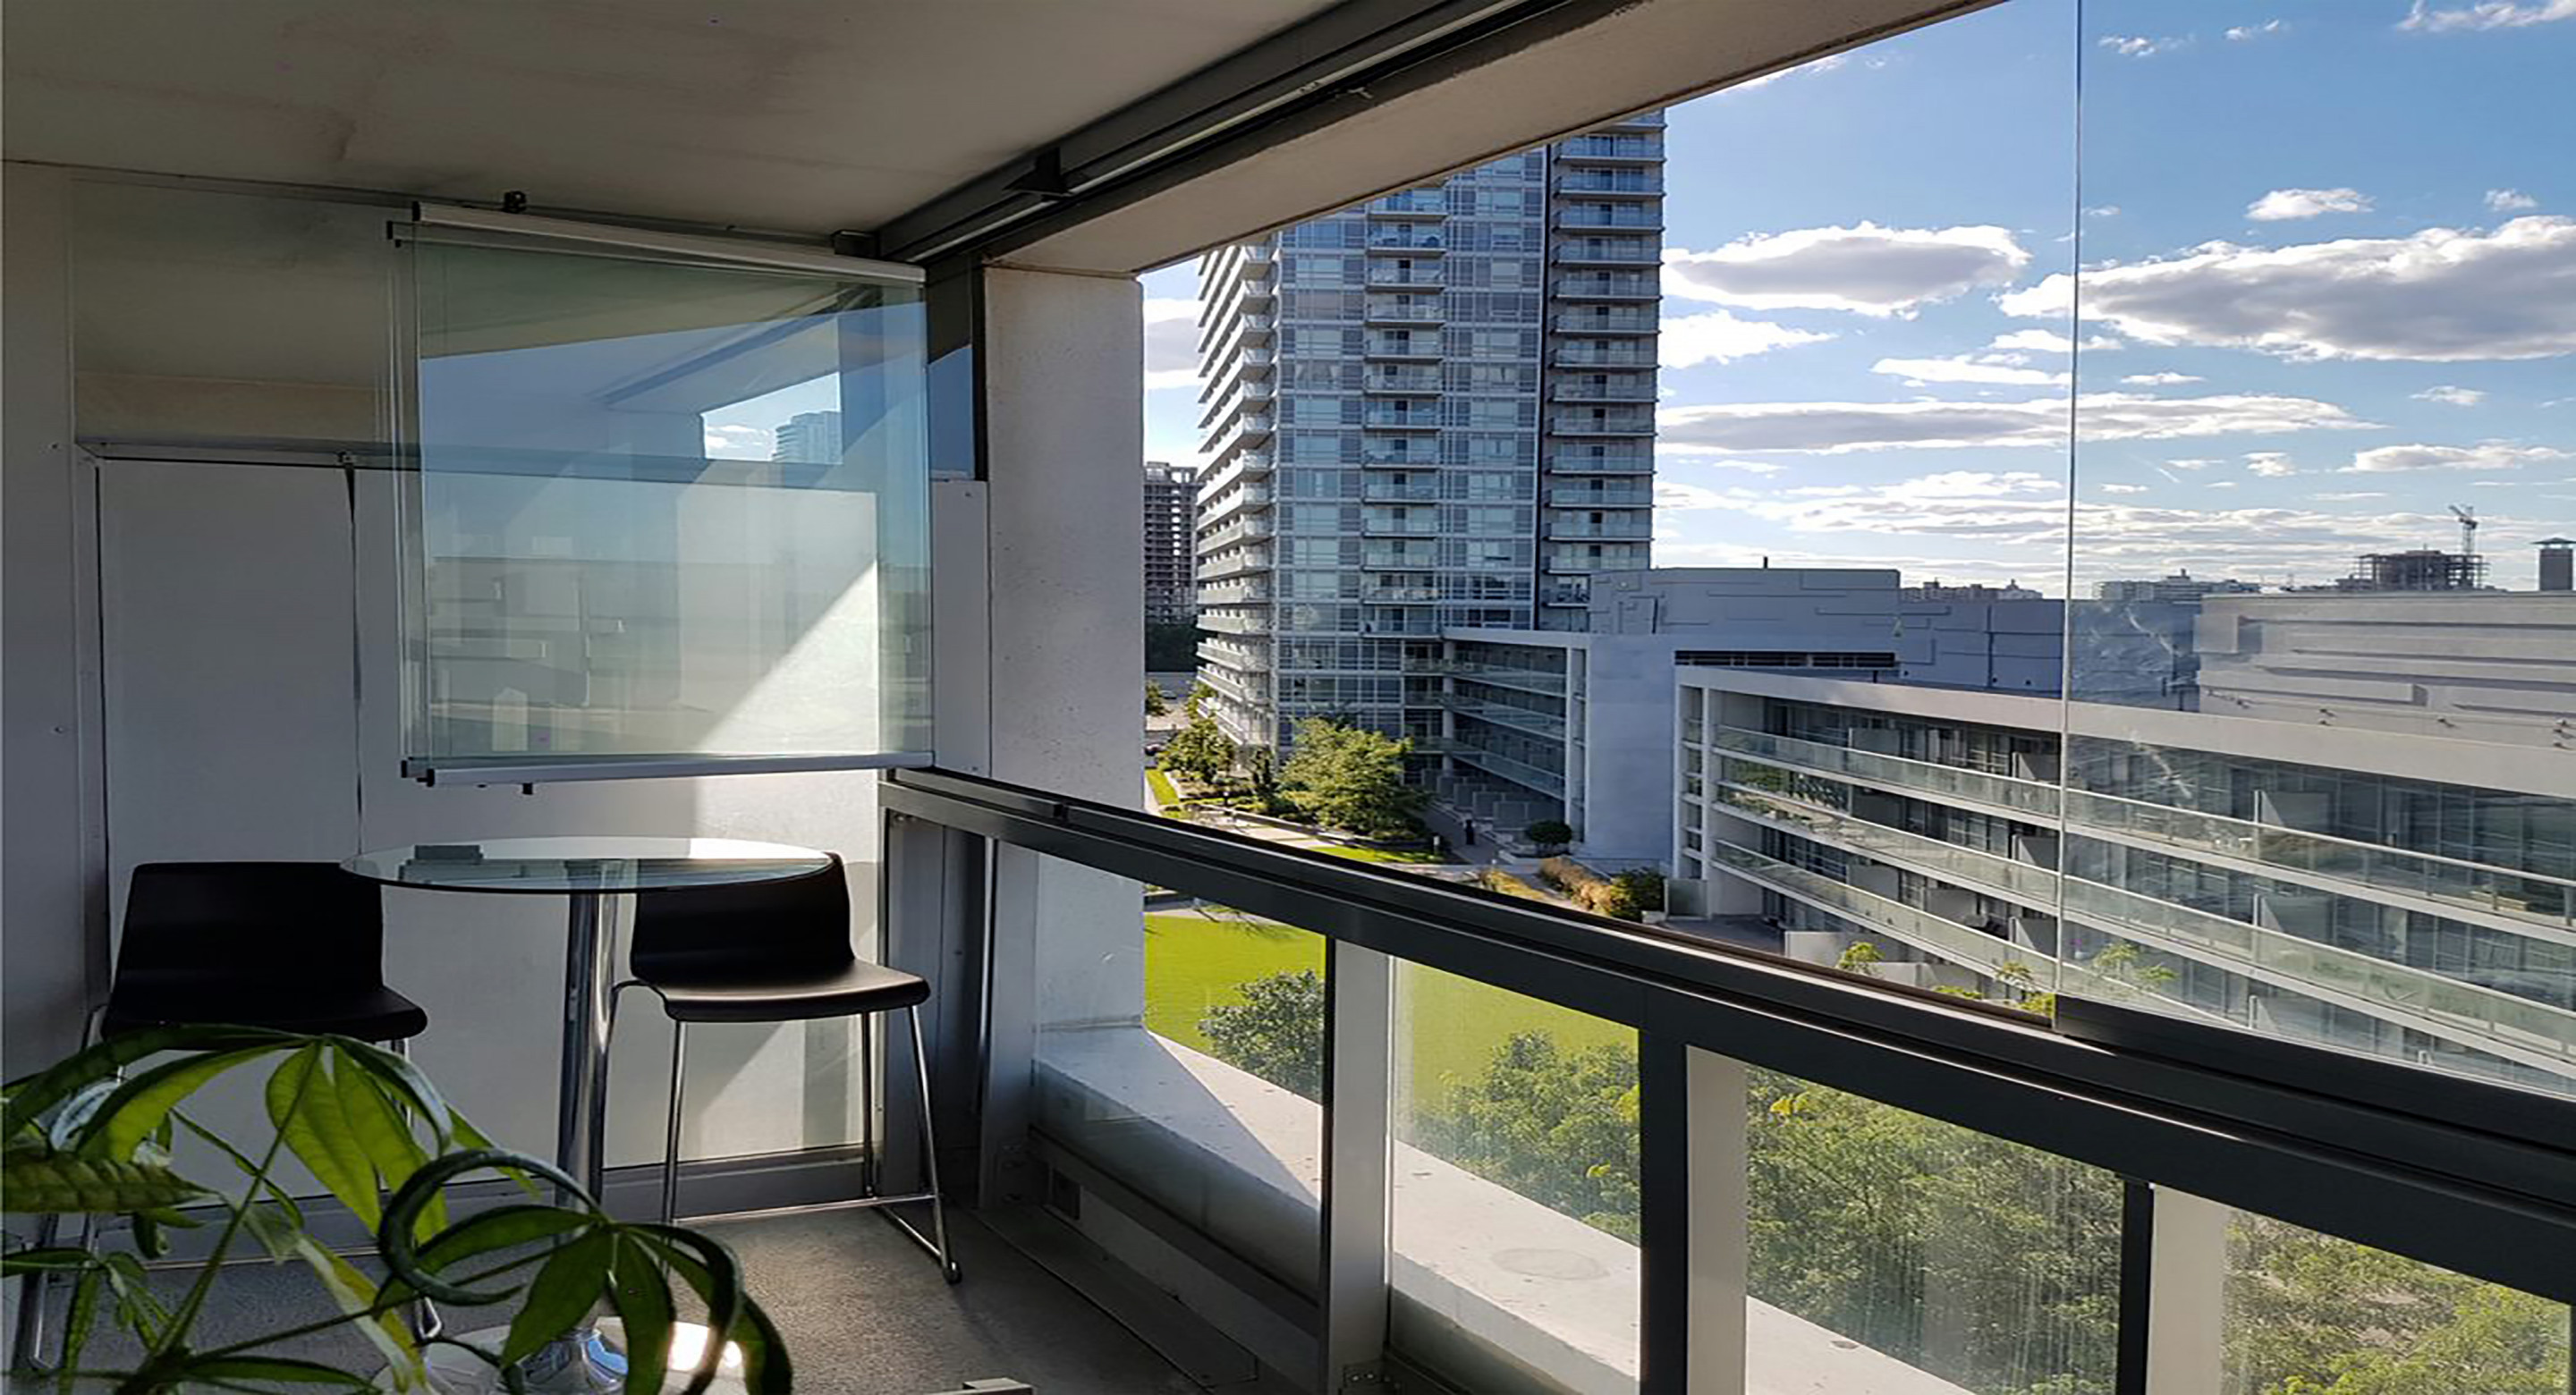 balcony glass, balcony glass toronto, balcony glass vancouver, balcony glass hamilton, balcony glass condo, condo glazing, balcony enclosure in canada